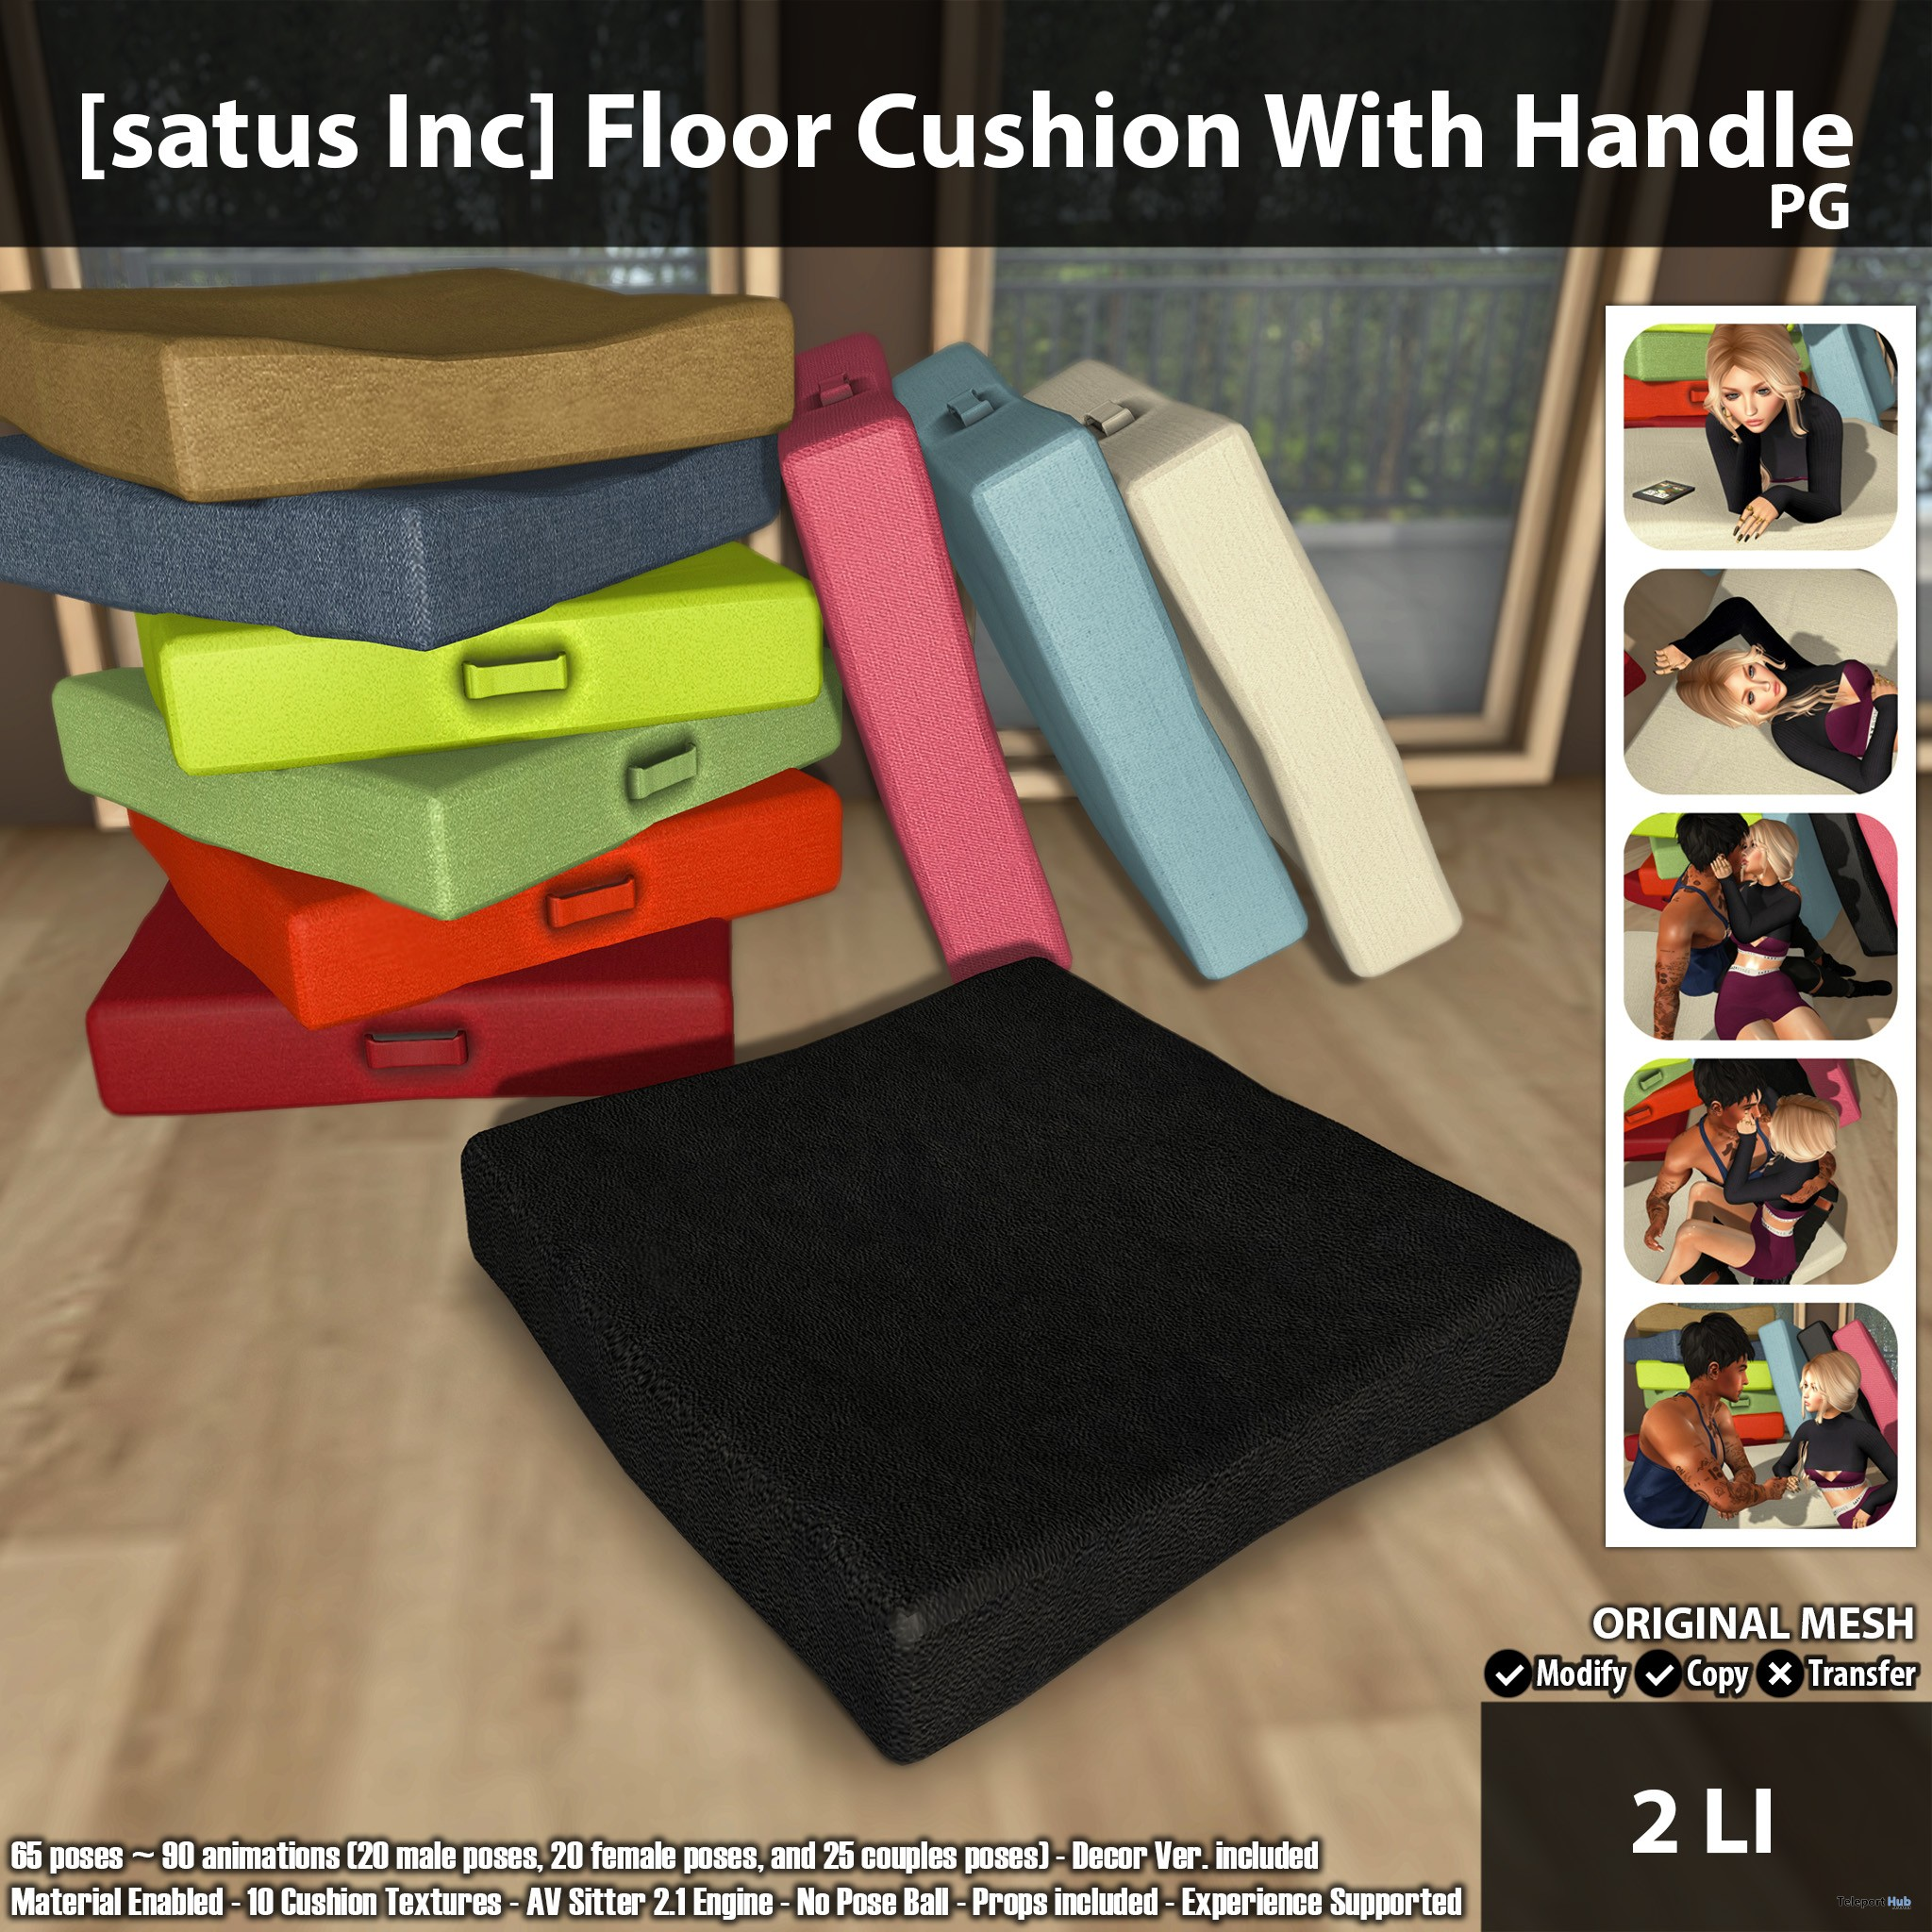 New Release: Floor Cushion With Handle Adult & PG by [satus Inc] - Teleport Hub - teleporthub.com